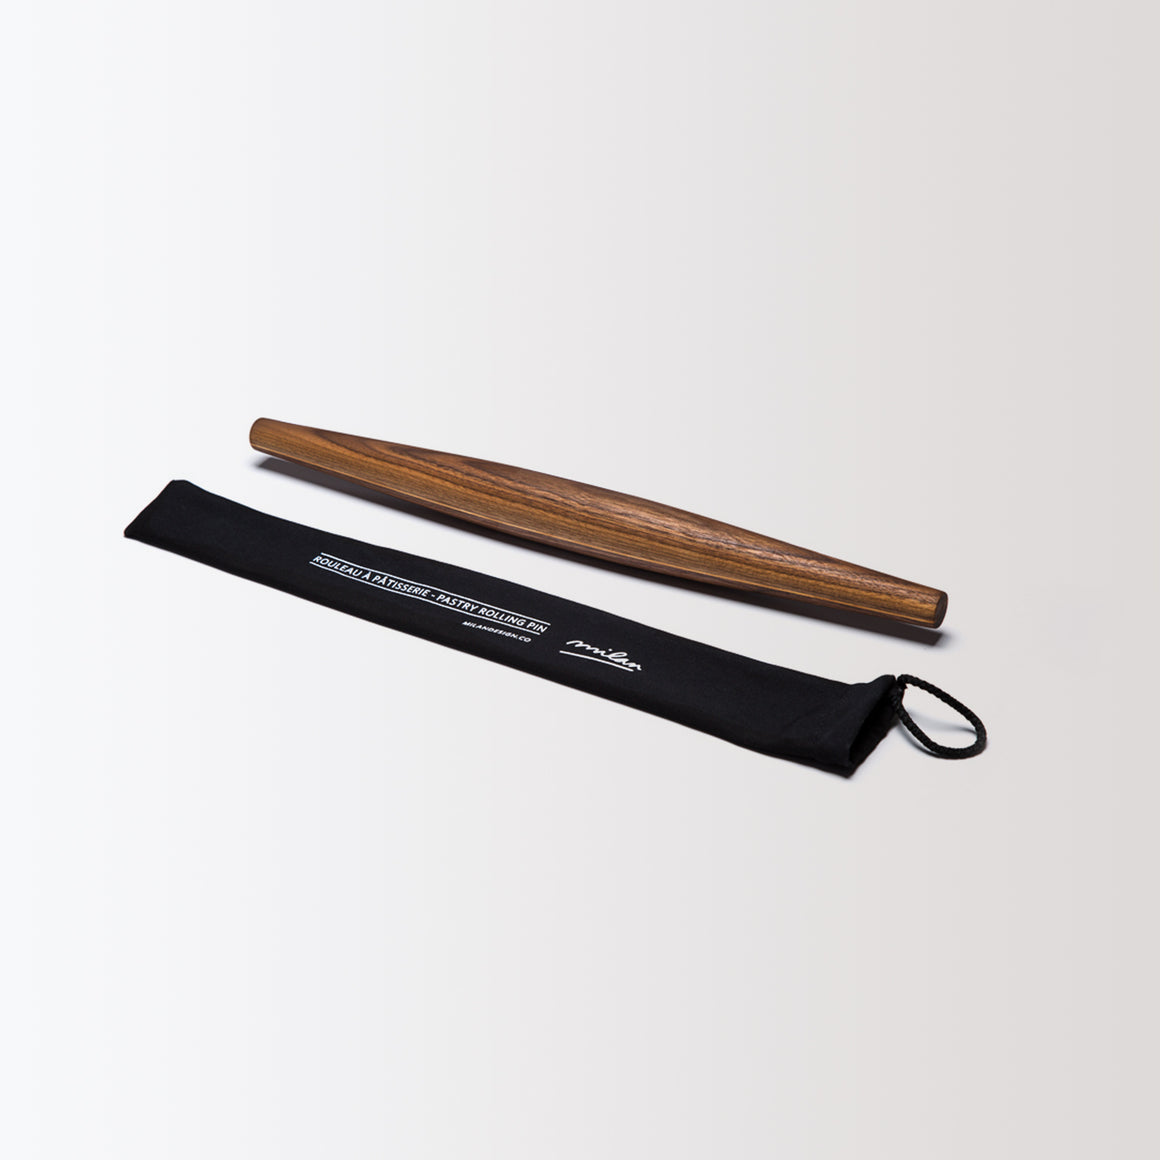 Black Walnut & Maple Rolling Pin - Sold by Chic & Basta